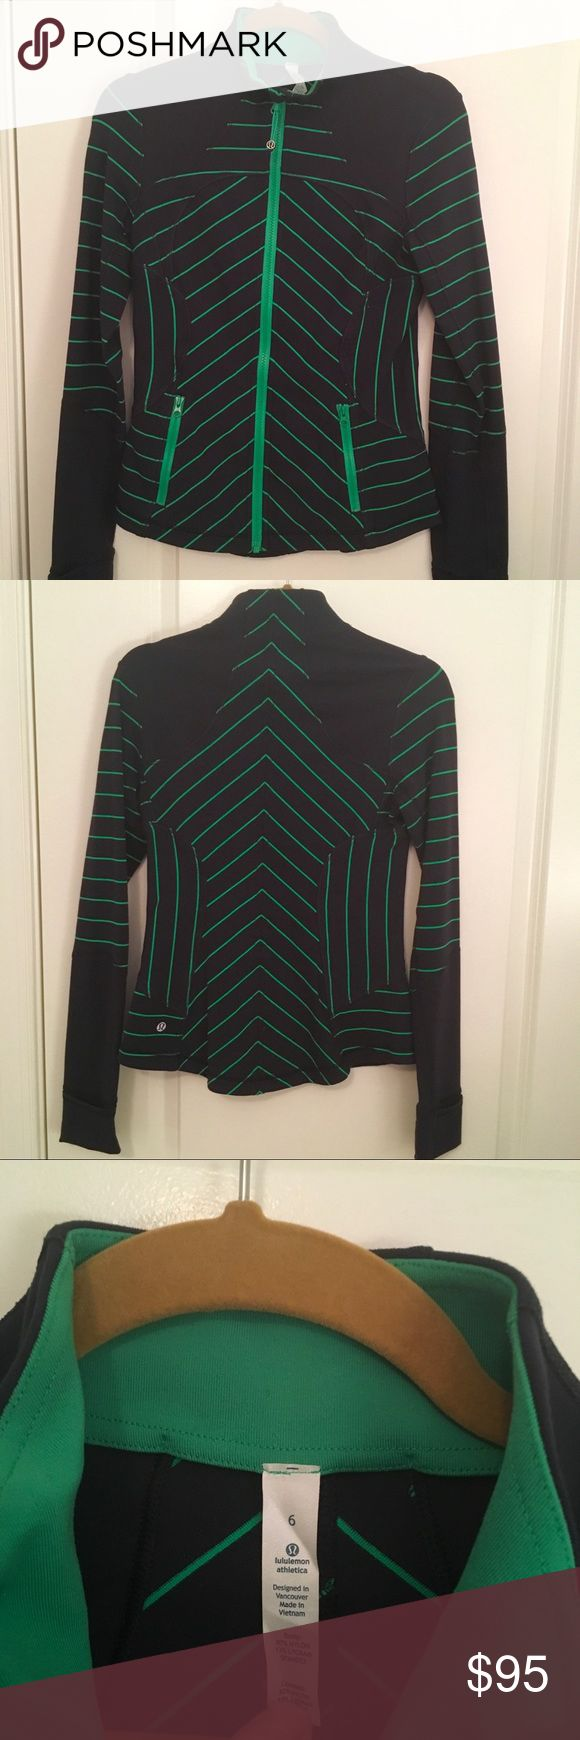 """Lululemon Define Jacket green/navy 6 Excellent condition! No marks or wear. Navy blue and kelly green Define jacket in women's 6. Fitted shape, very flattering design, and unique color combination. Thumb holes and """"cuffins"""" at the wrist. Luon material. Clean and ready for a new home! (I just don't have enough coordinating items in my wardrobe to justify keeping it.) lululemon athletica Tops Sweatshirts & Hoodies"""